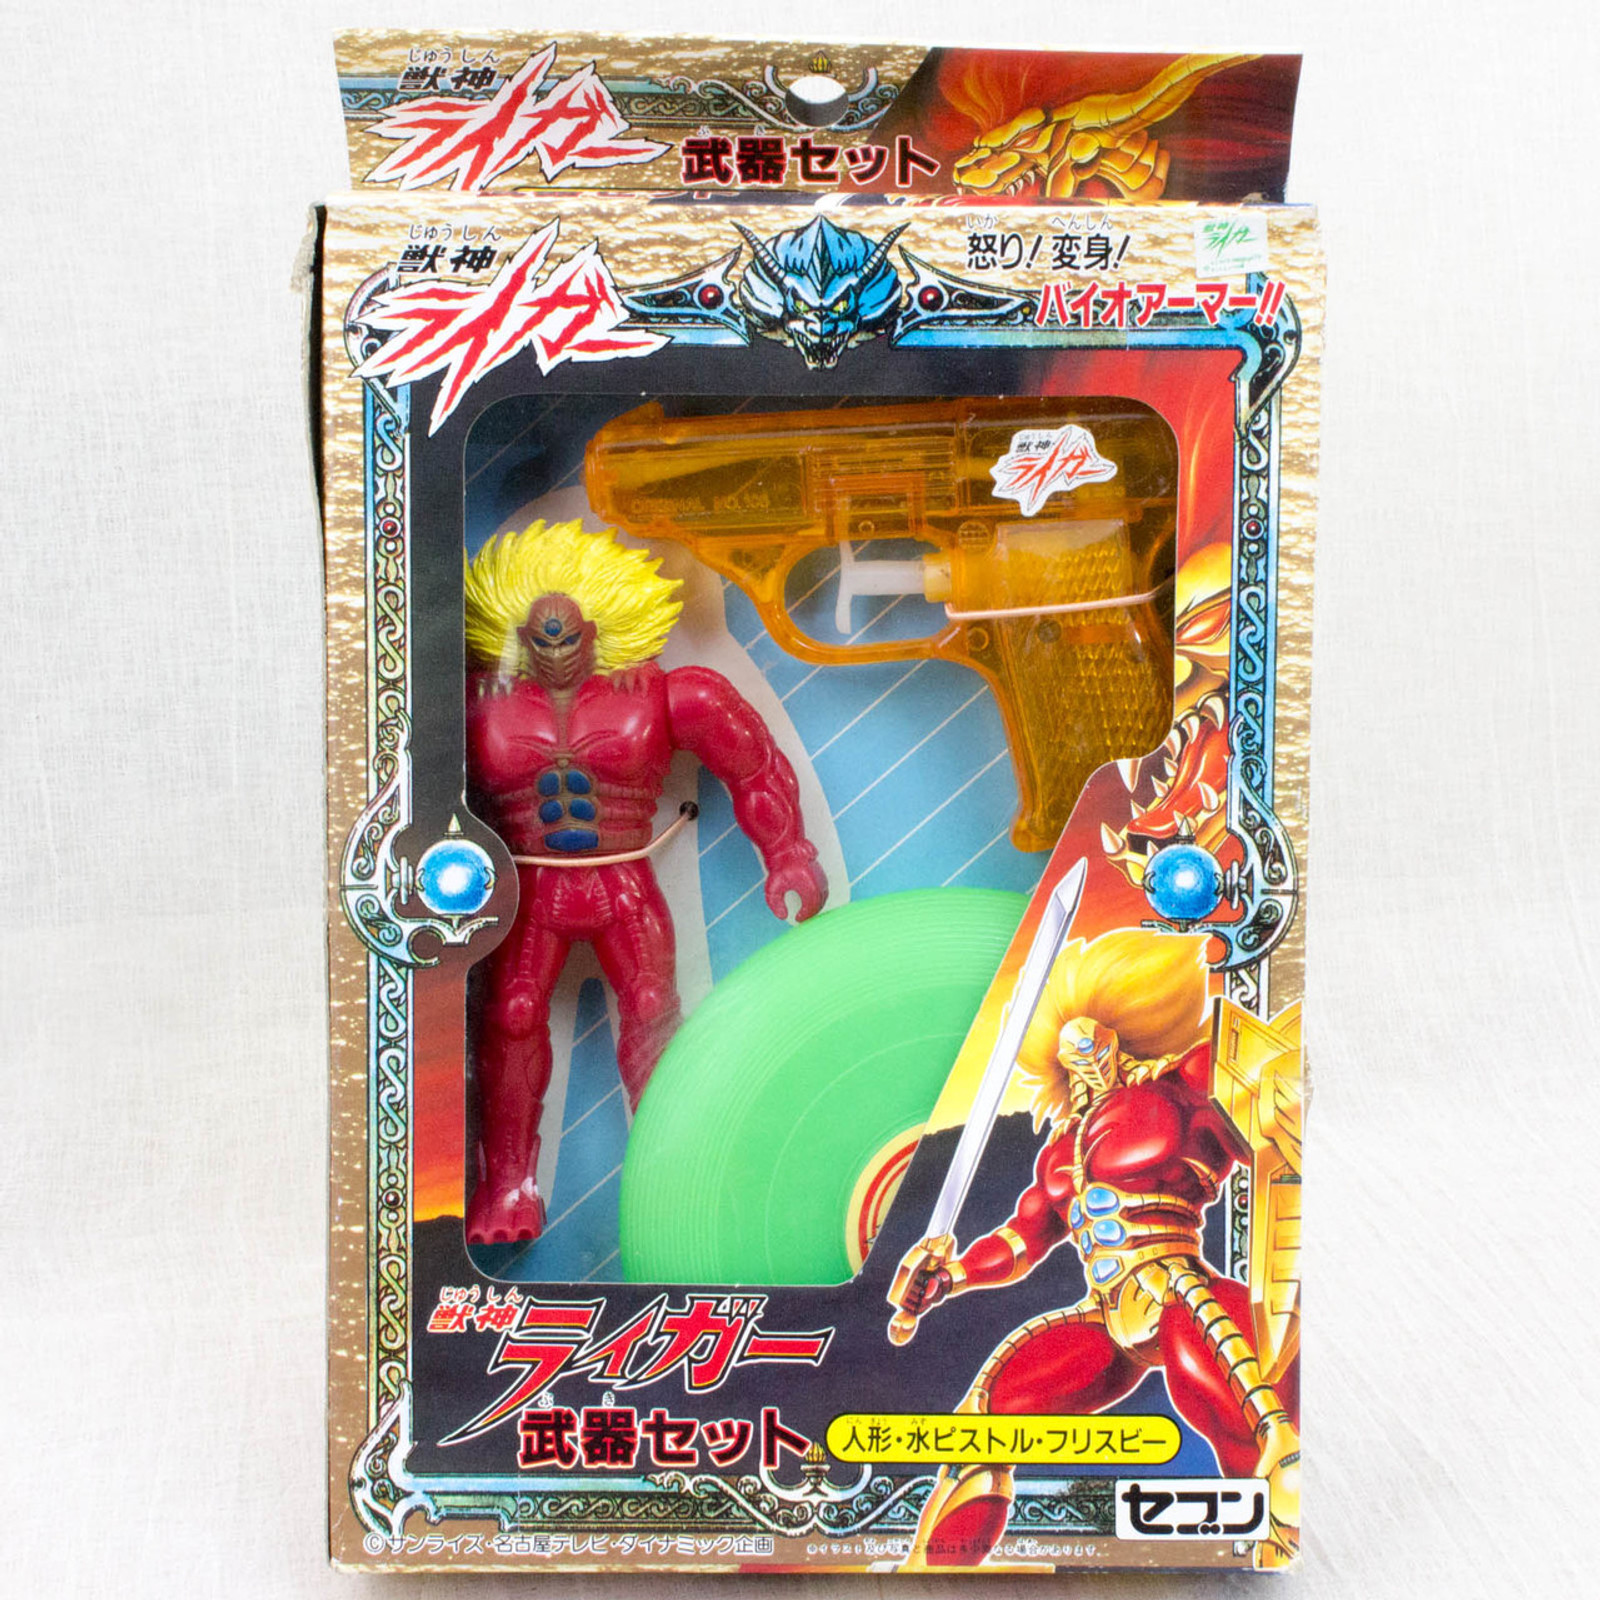 Retro! Jushin Liger Set Figure Water Gun Frisbee JAPAN ANIME MANGA